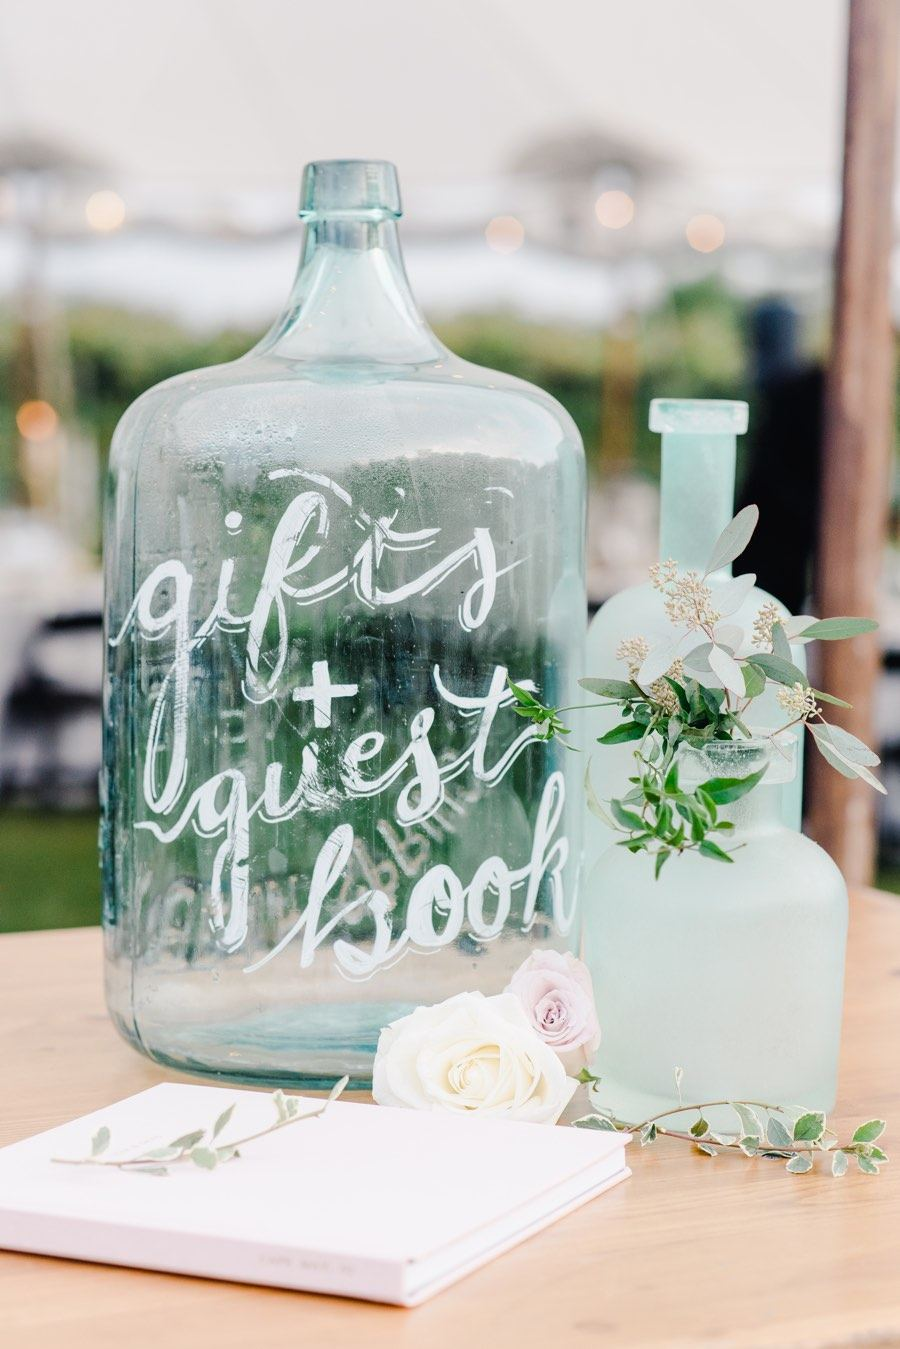 Romantic guest book table